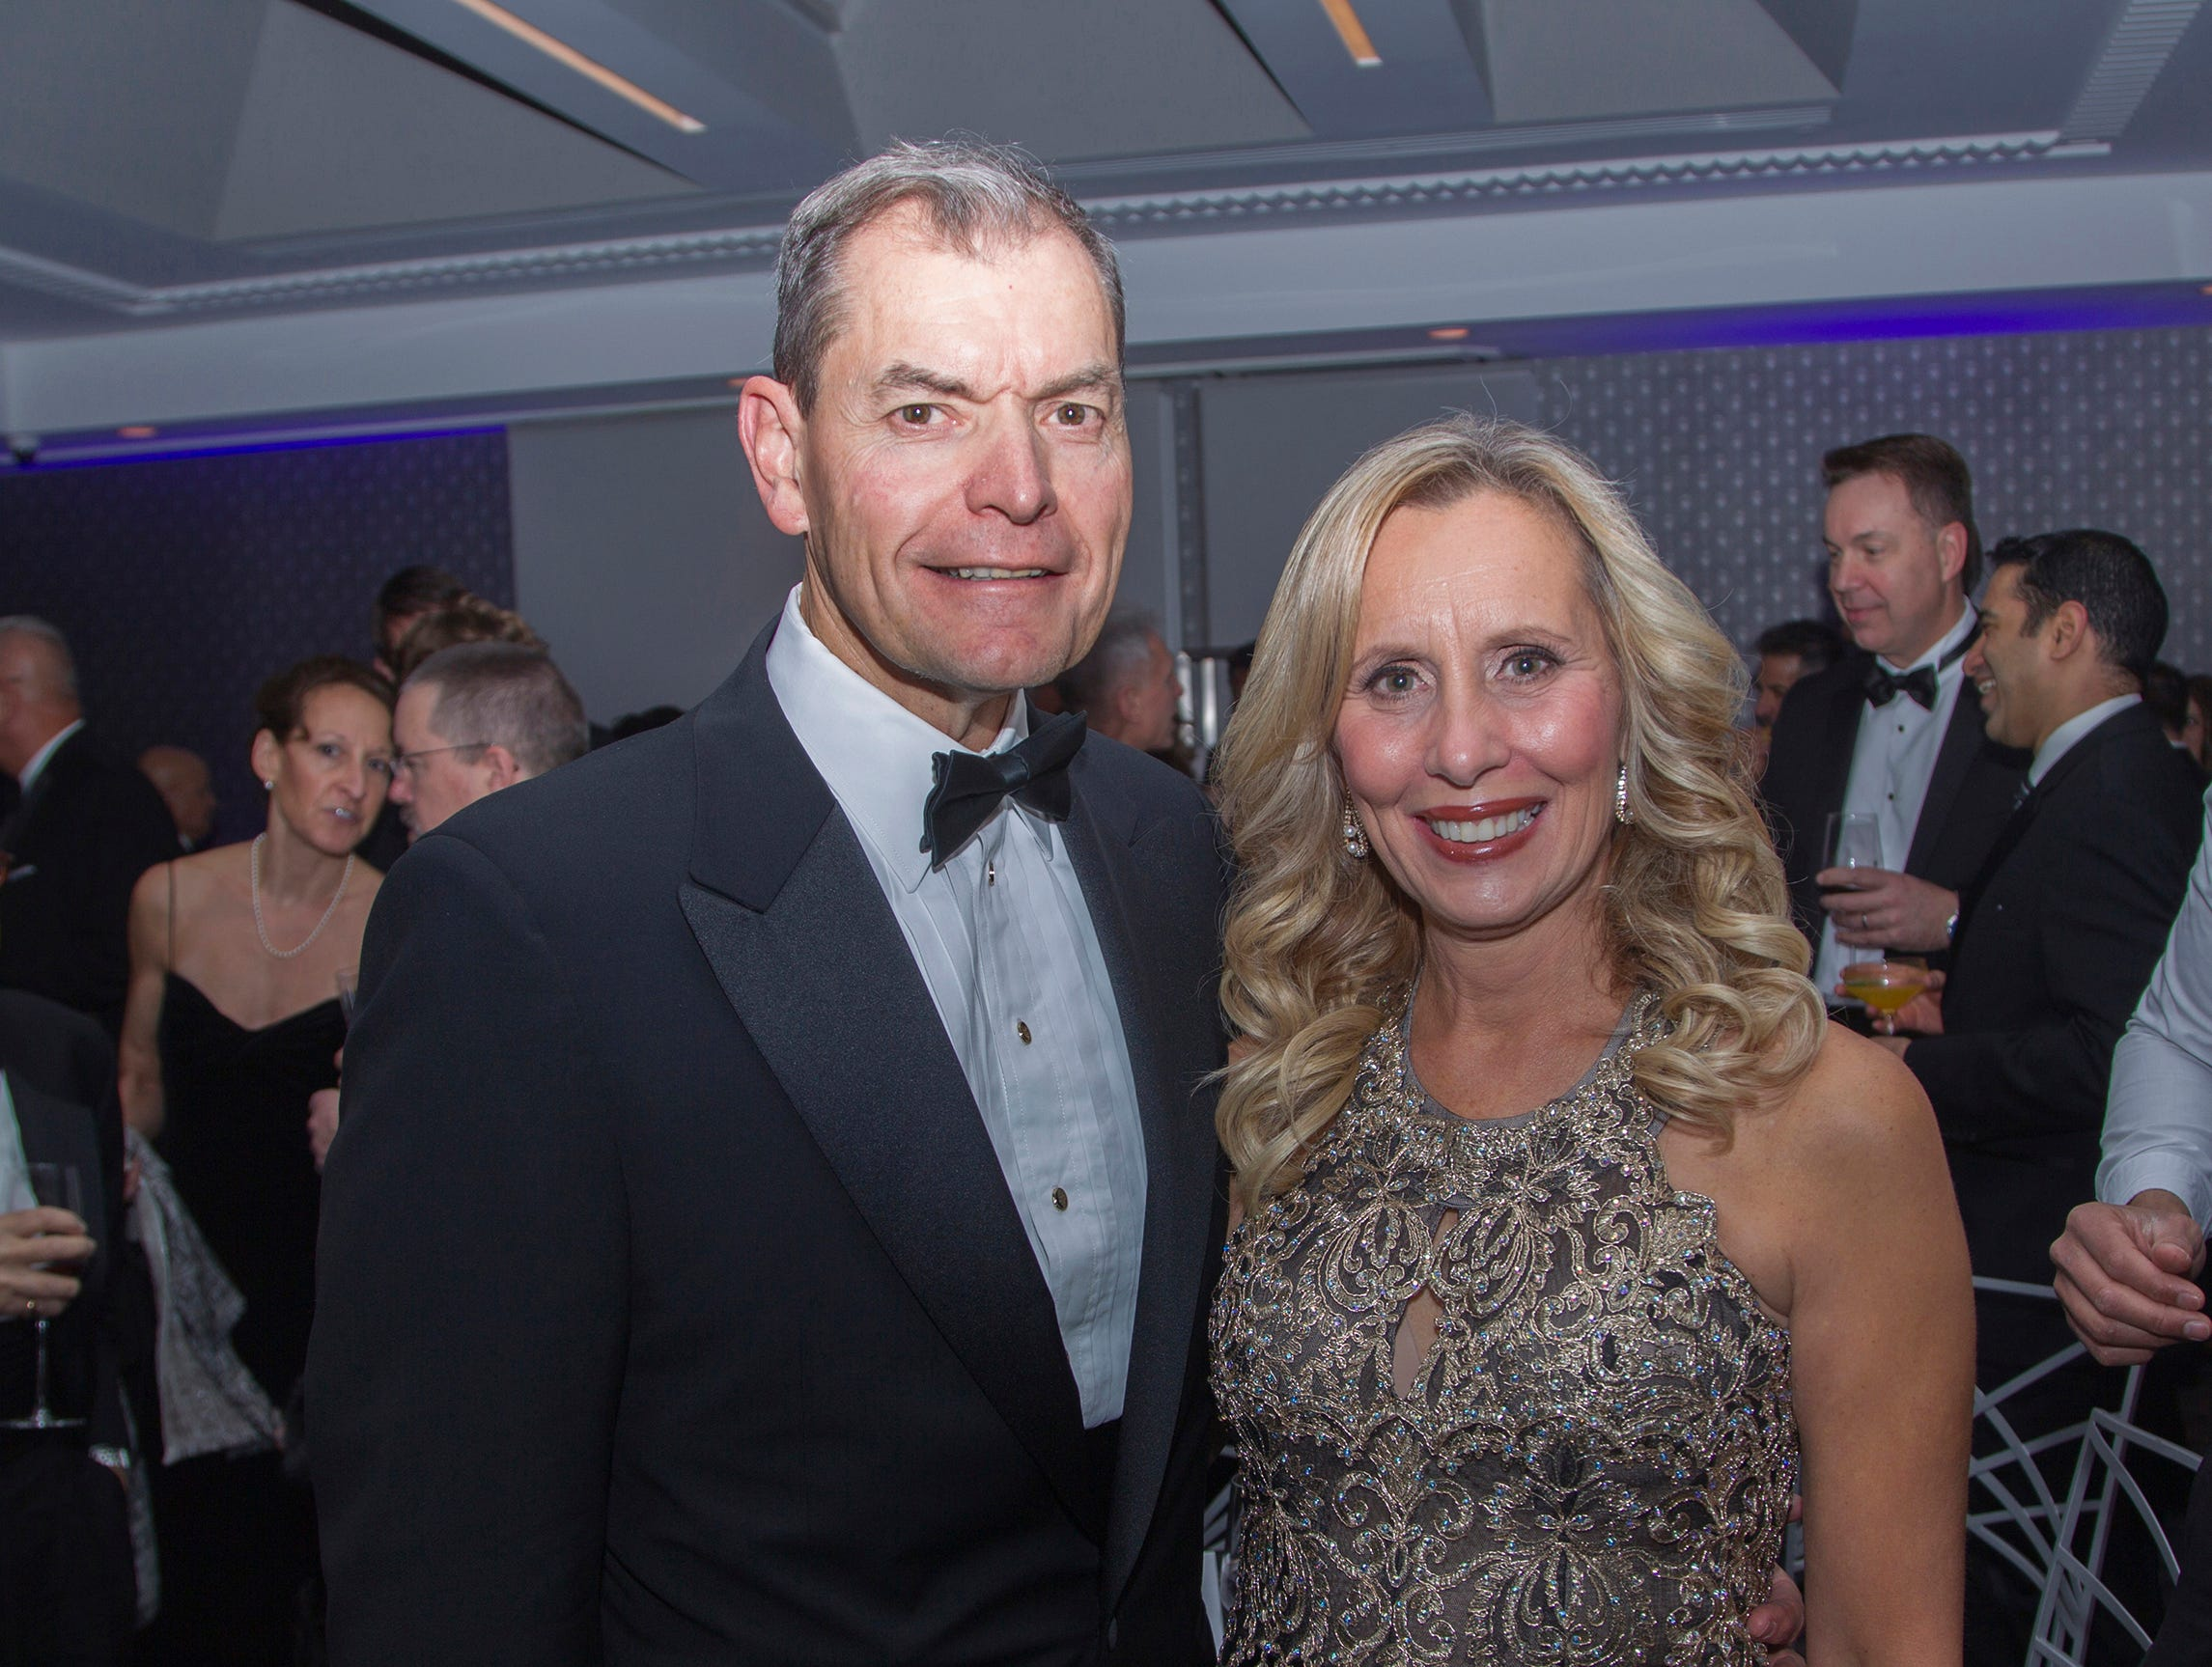 Dr. and Mrs. Michael Meese. Holy Name Medical Center held its 2018 Founders Ball in NYC at Ziegfeld Ballroom. 11/17/2018